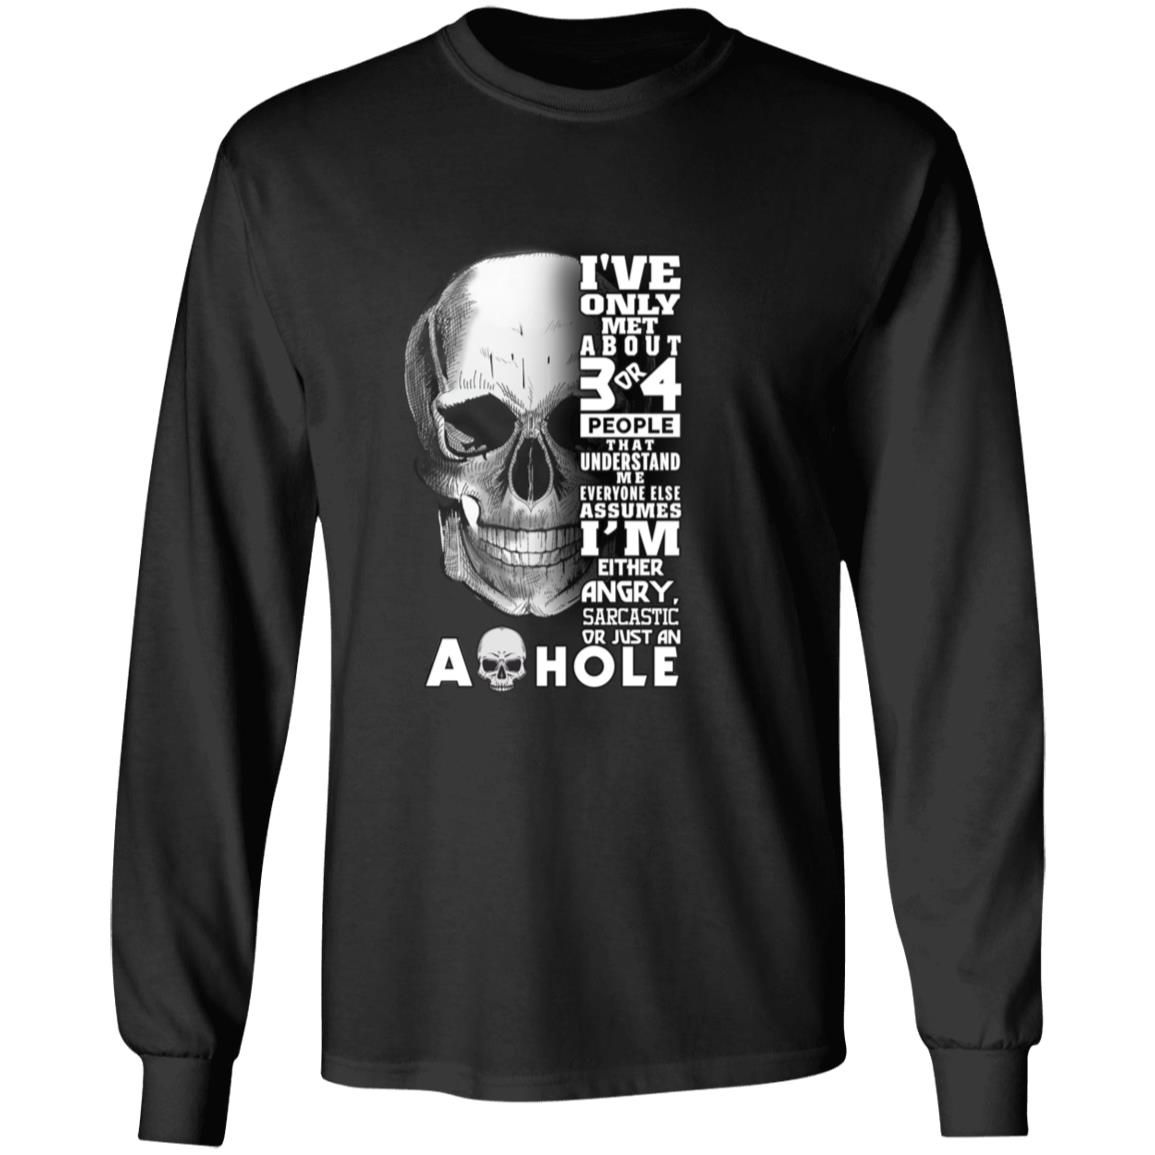 I've only met about 3 or 4 people that understand shirt